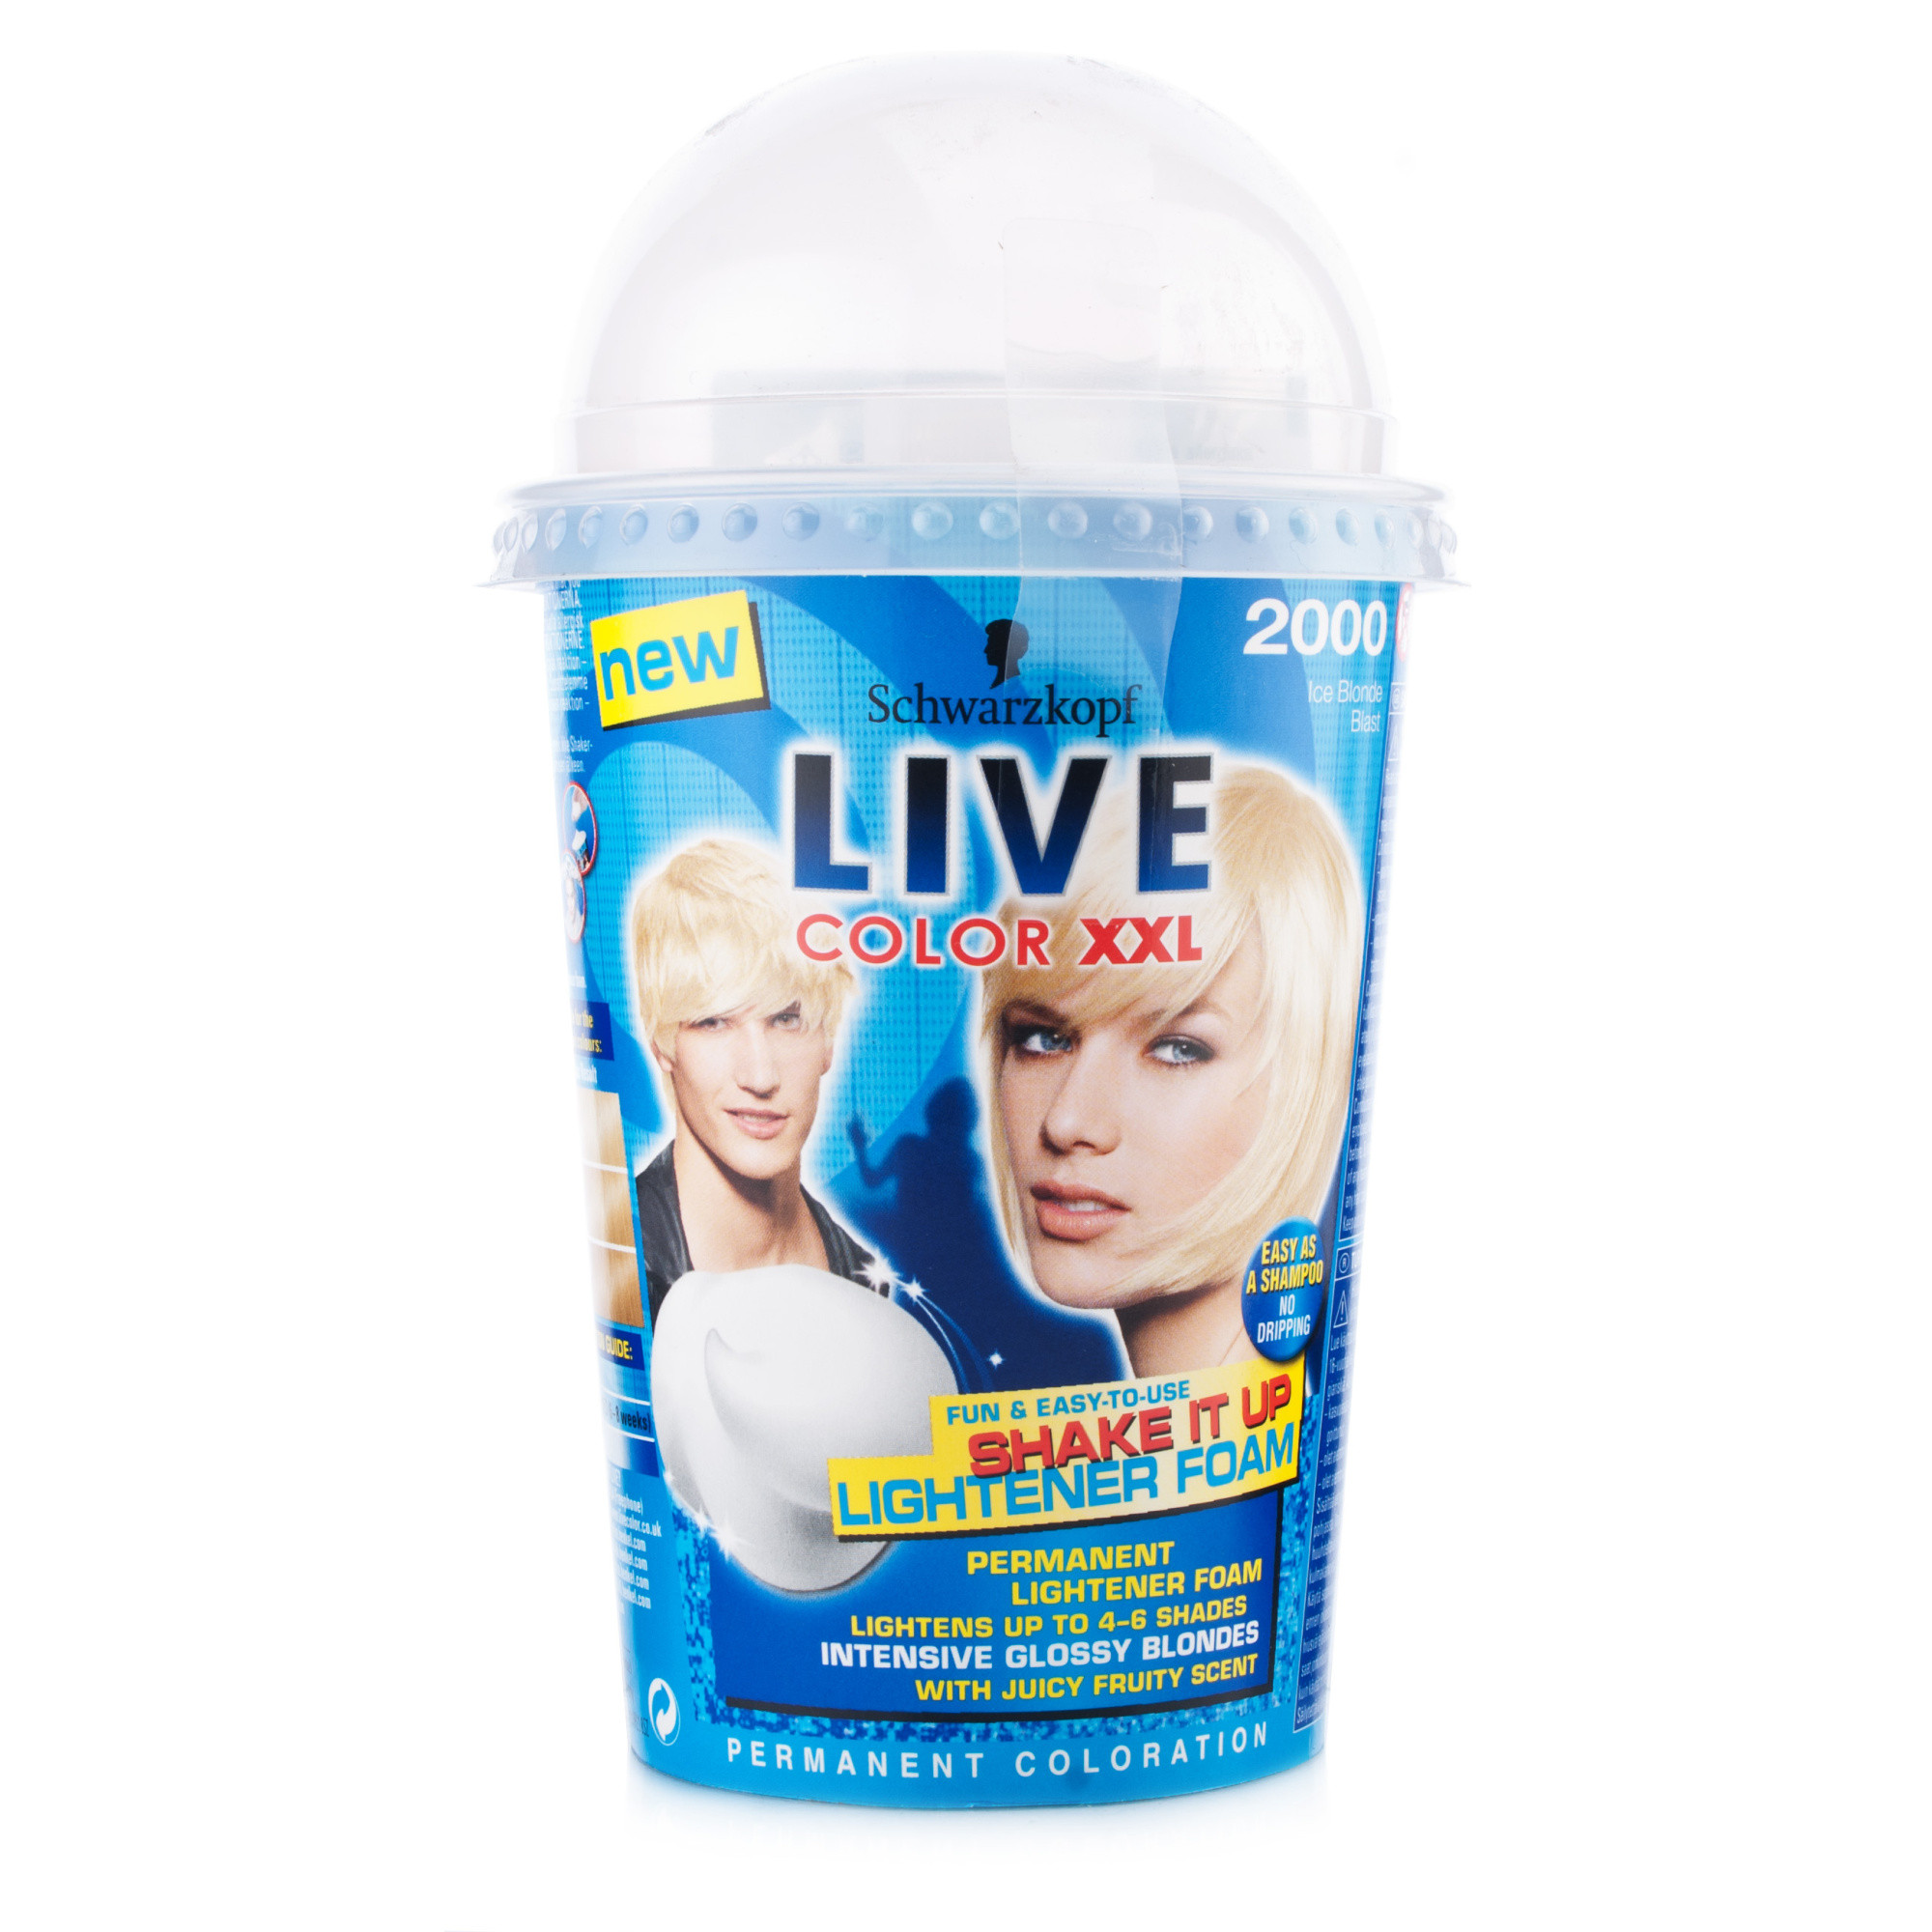 Schwarzkopf Live Colour XXL Shake It Up Foam 2000 Ice Blonde Blast